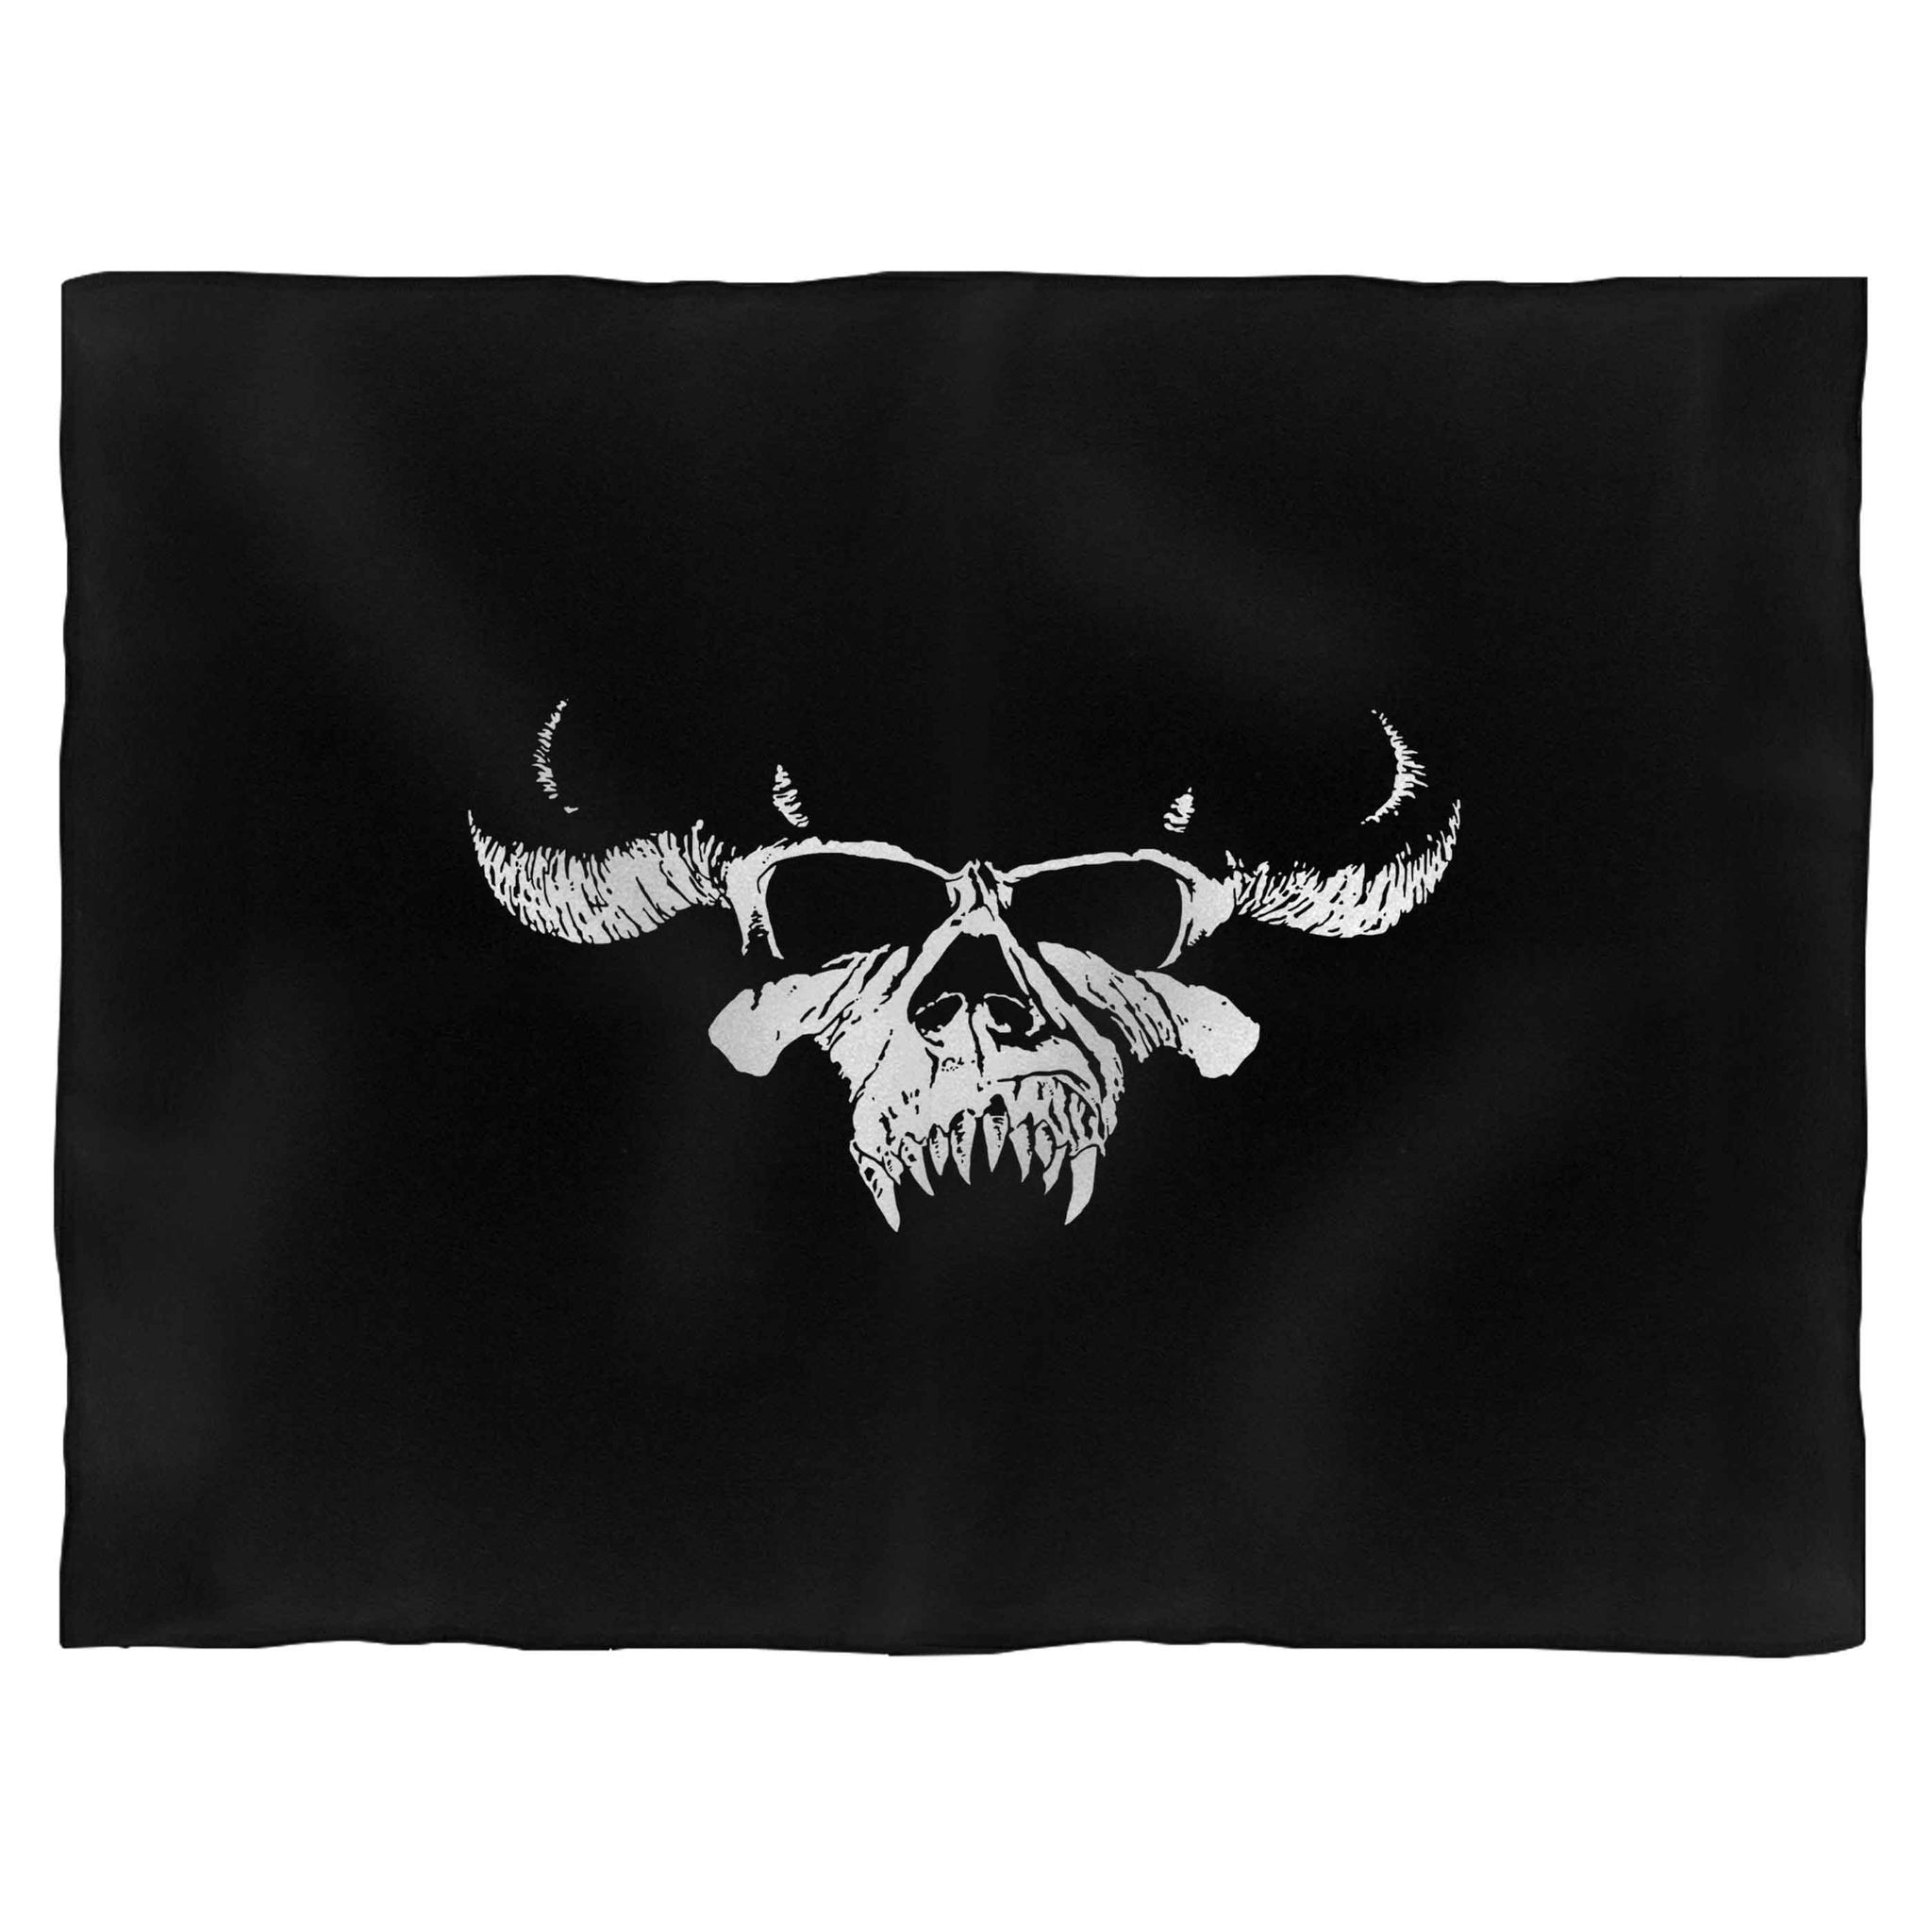 Big Skull Fiend Danzig Horror Blanket